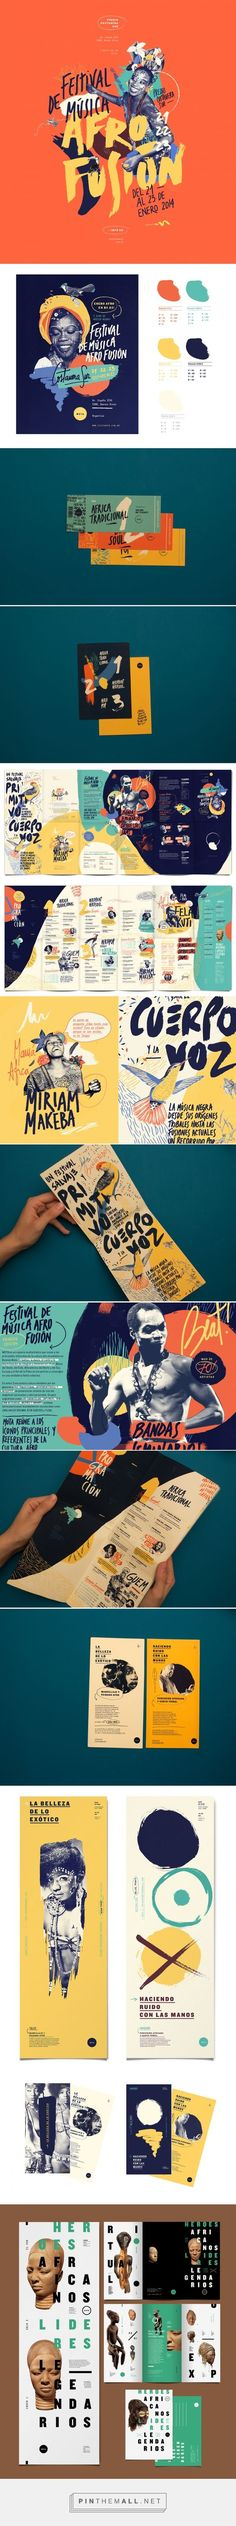 AFRO FUSION FESTIVAL on Behance - created via https://pinthemall.net: